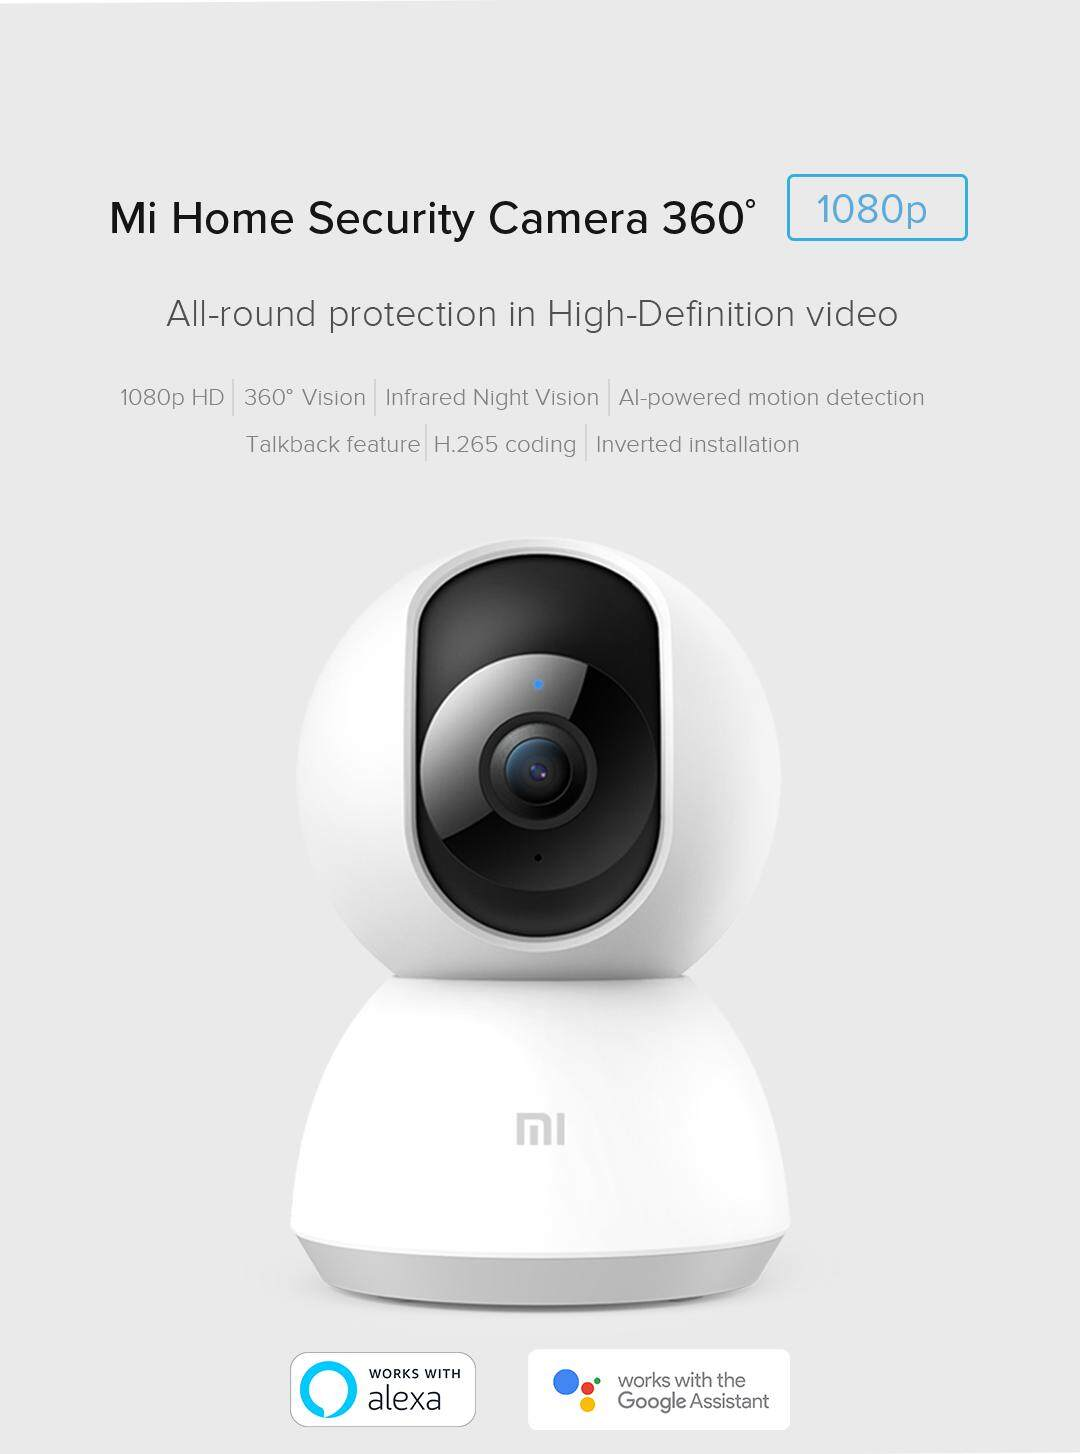 [#1GUARDYOURHOME] NEW 2019 XiaoMi MIJIA MI HOME 360 Degree 1080P Pan Tilt  Zoom HD IP Security Camera Wifi CCTV Night Vision Version MIHOME DAFANG